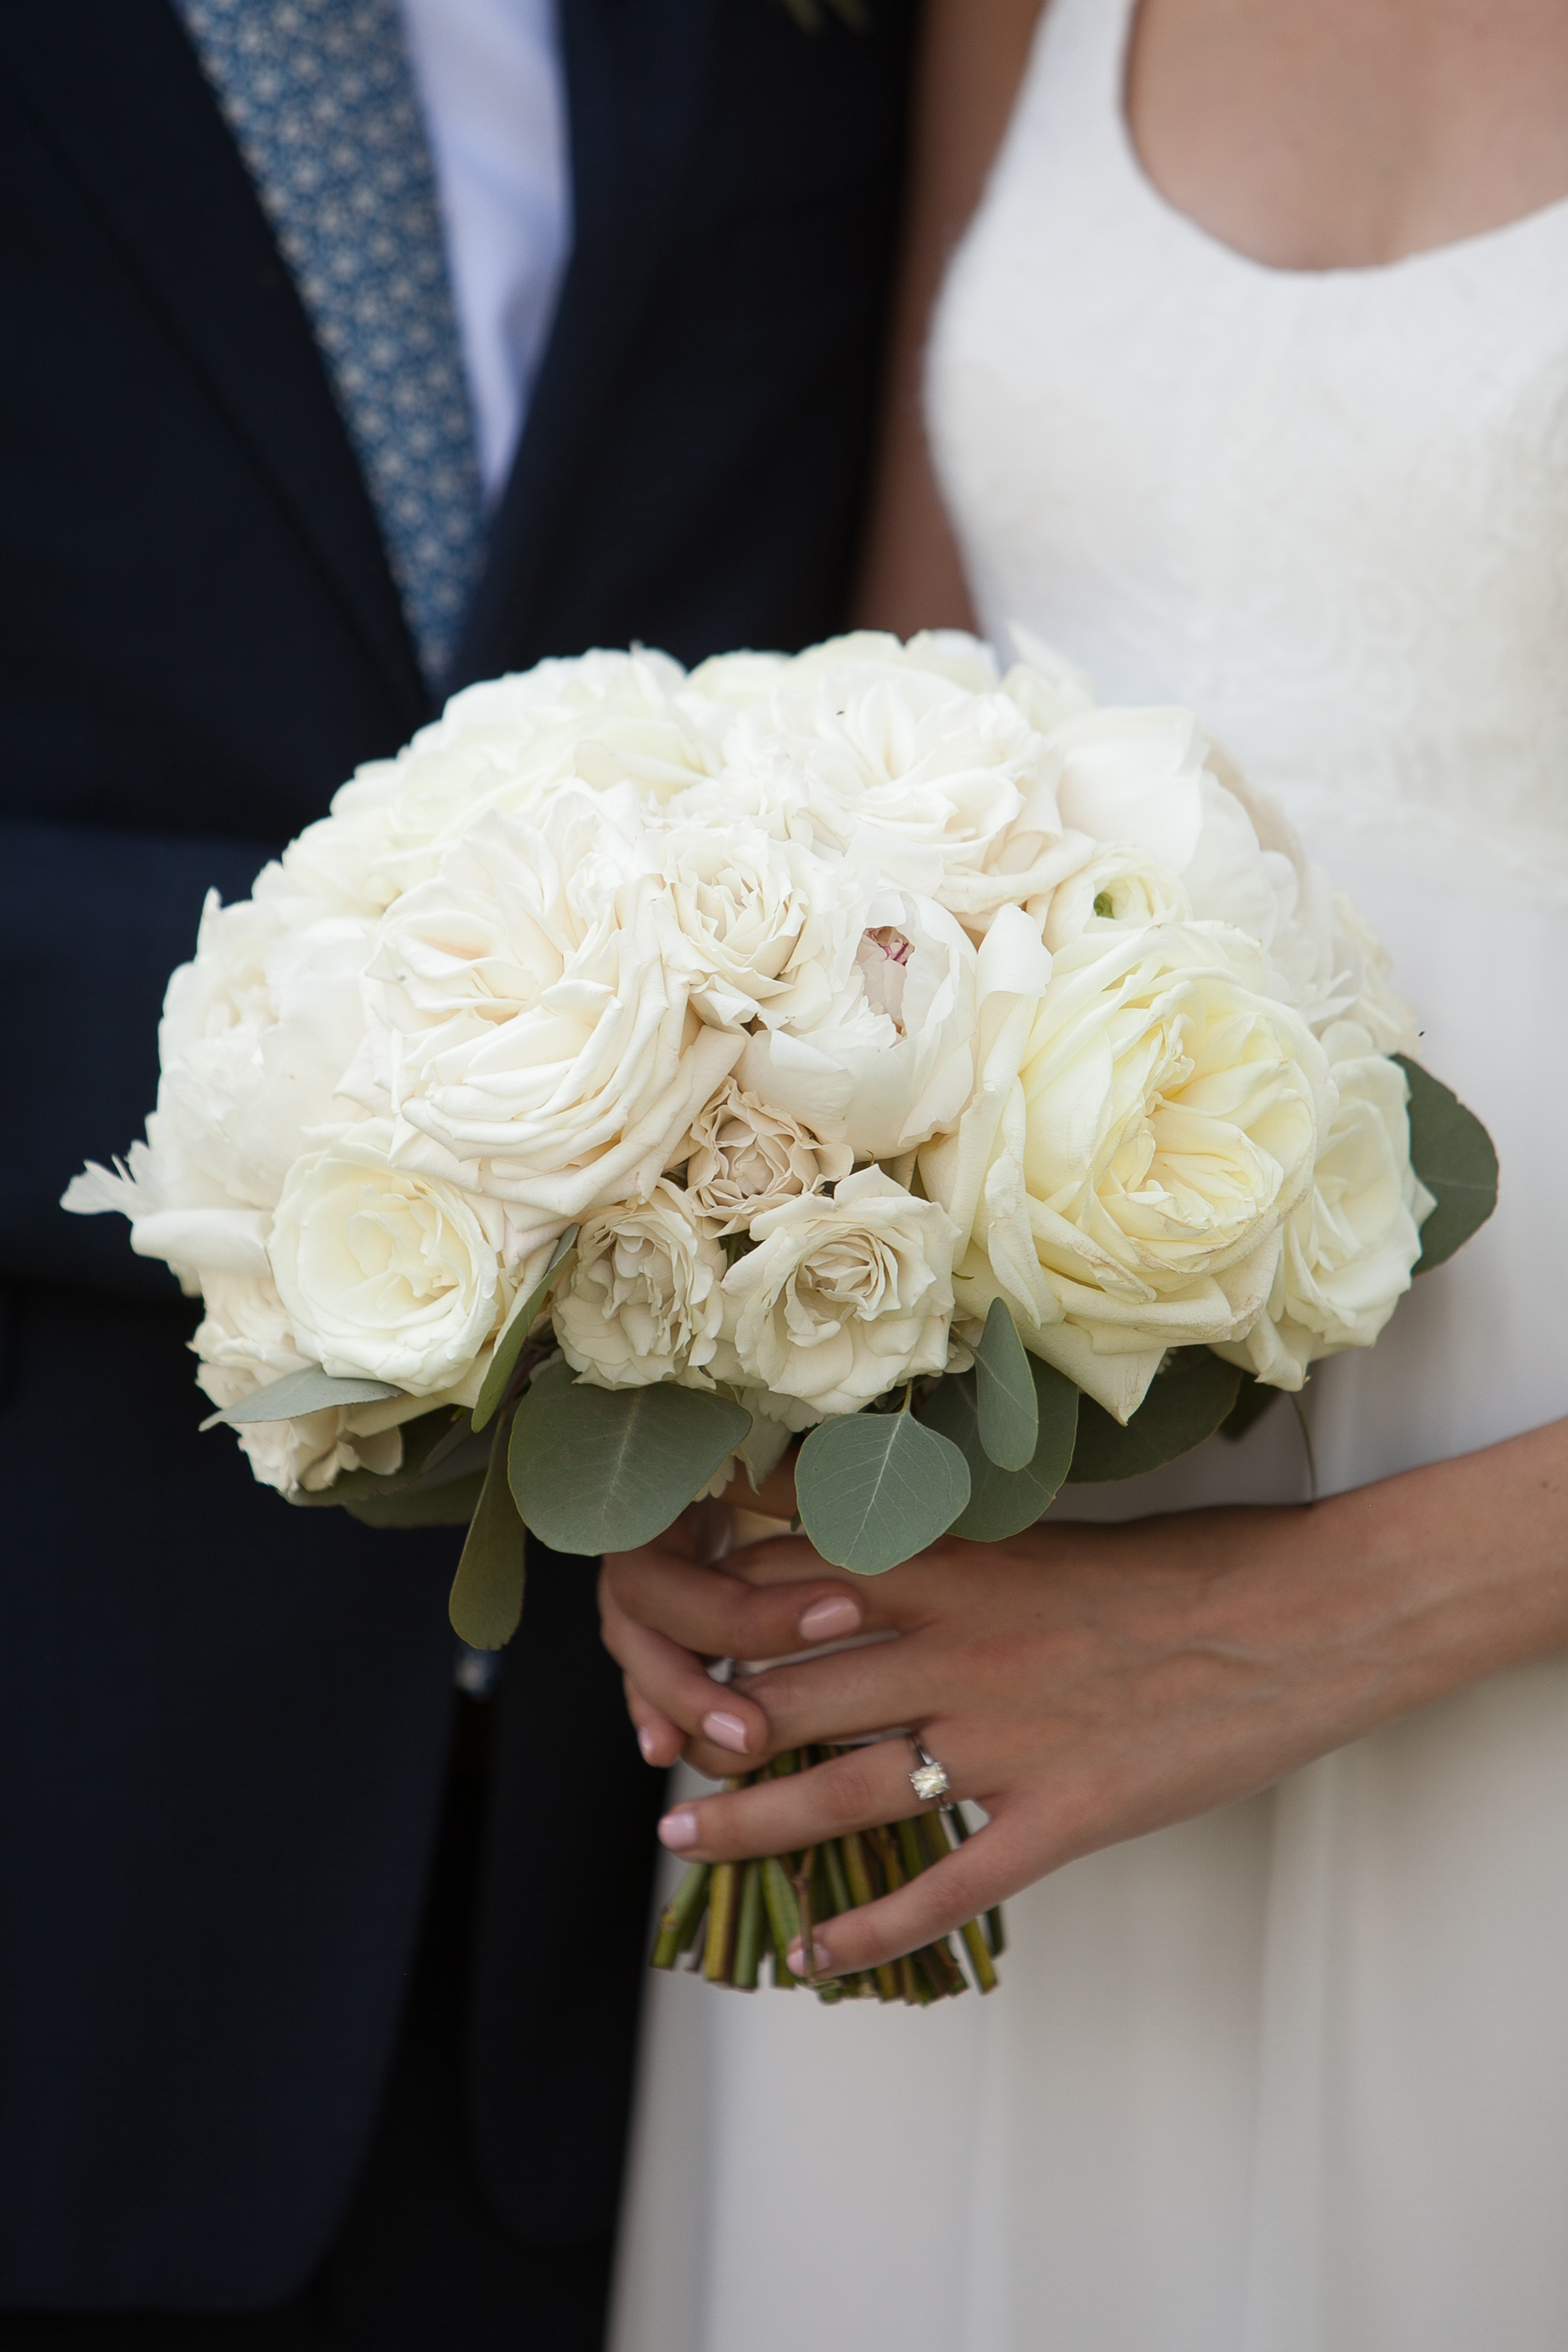 Atelier Ashley Flowers + Dusty Blue + Borrowed and Blue Photography + Congressional Country Club + DC wedding + all white wedding bouquet + white peonies